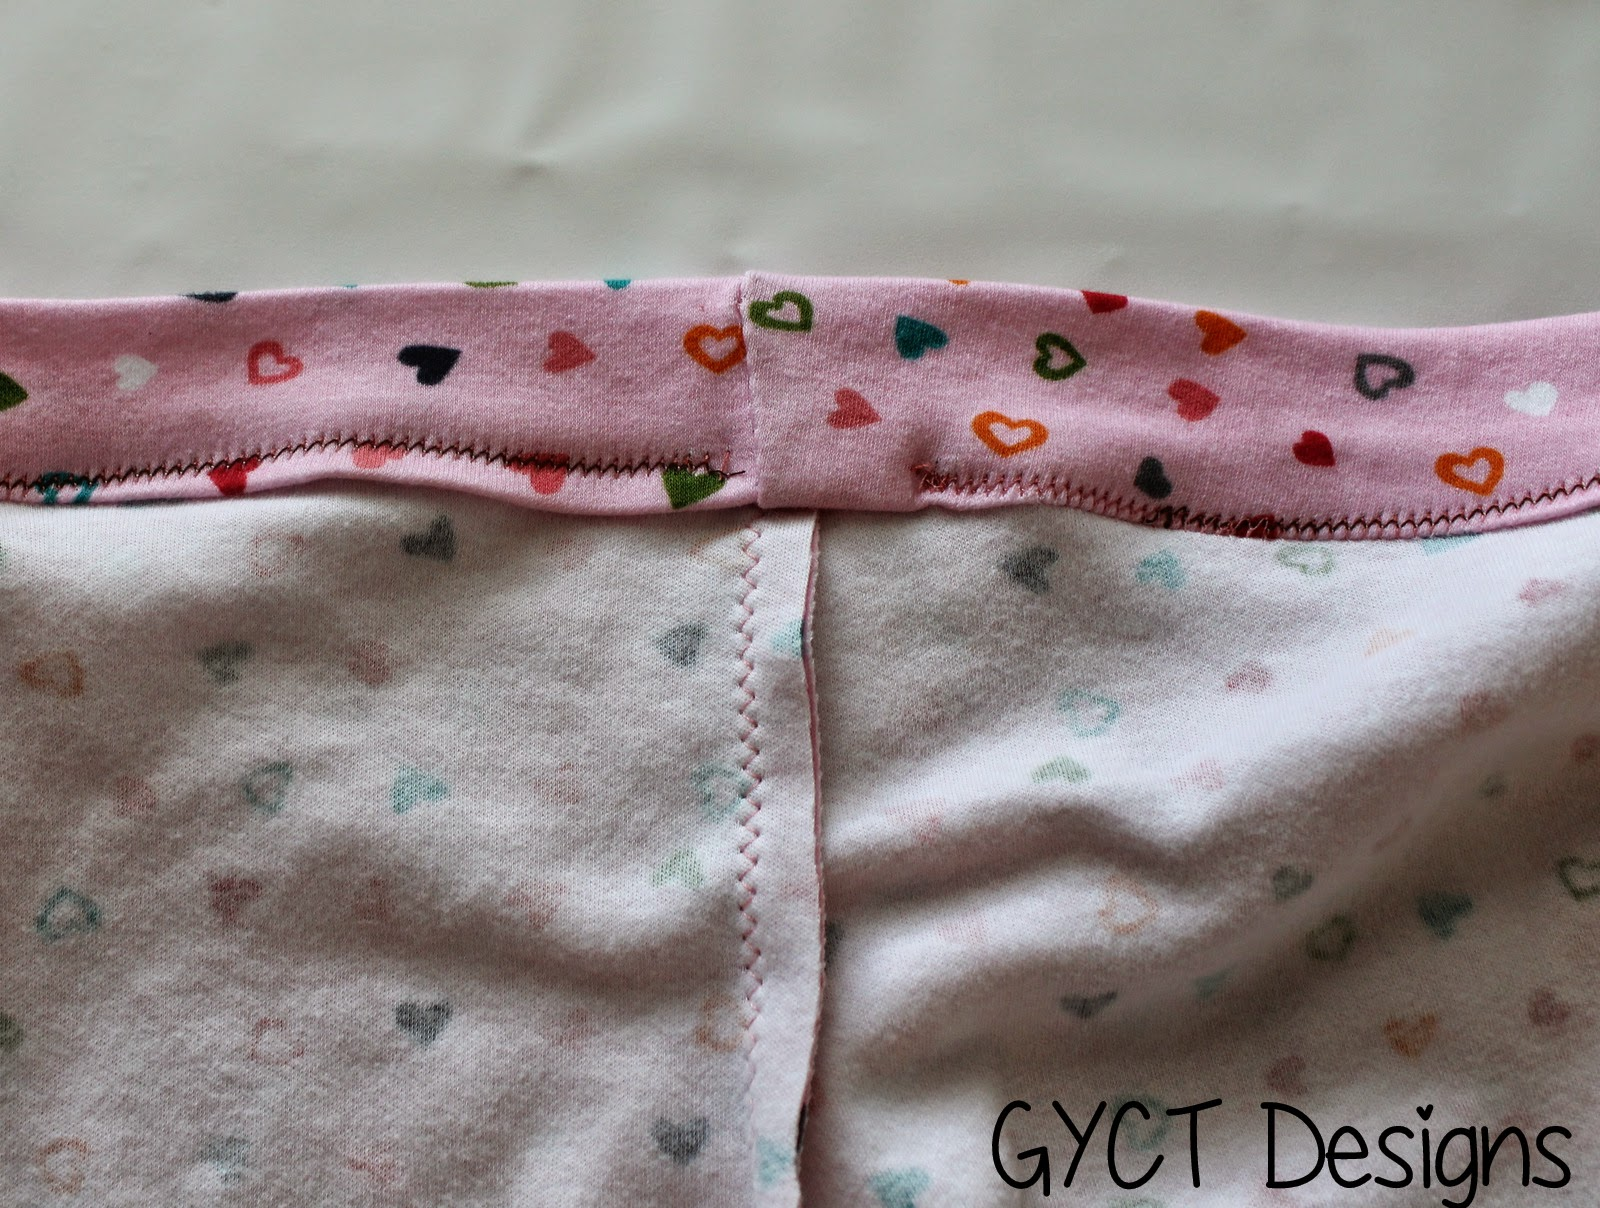 Sewing 101:  How to Make a Casing by GYCT